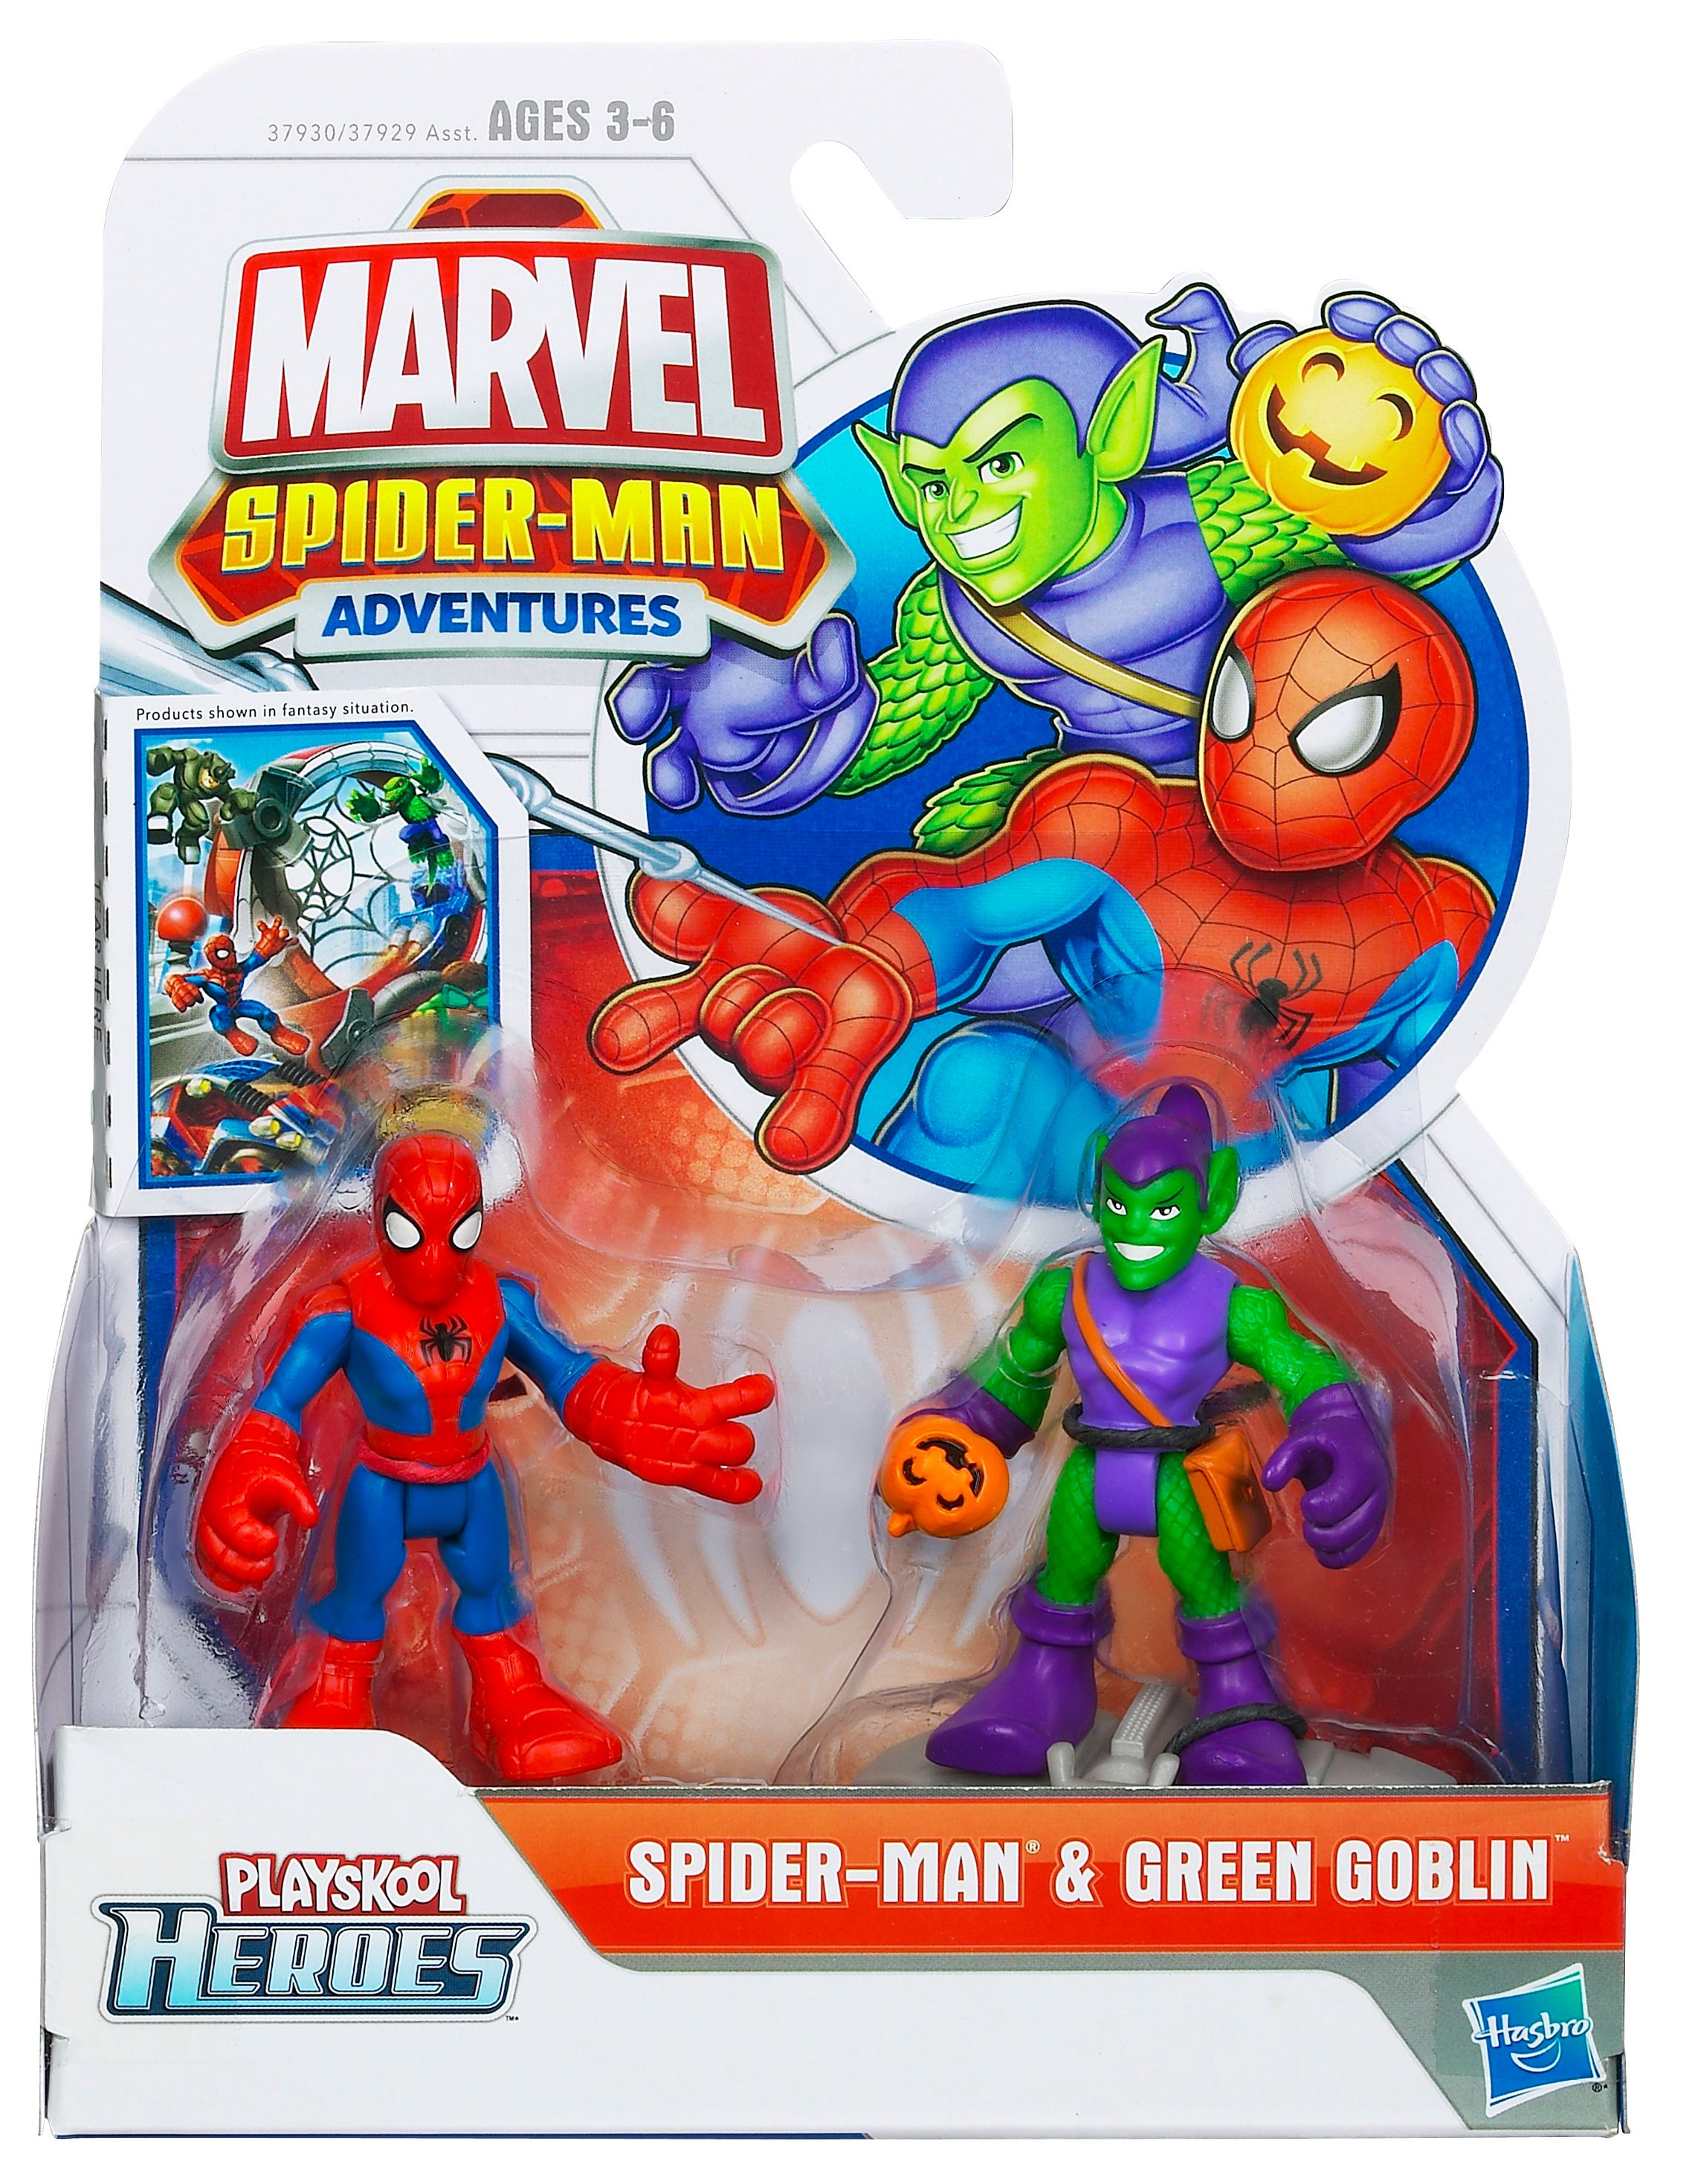 Spiderman & Green Goblin figure